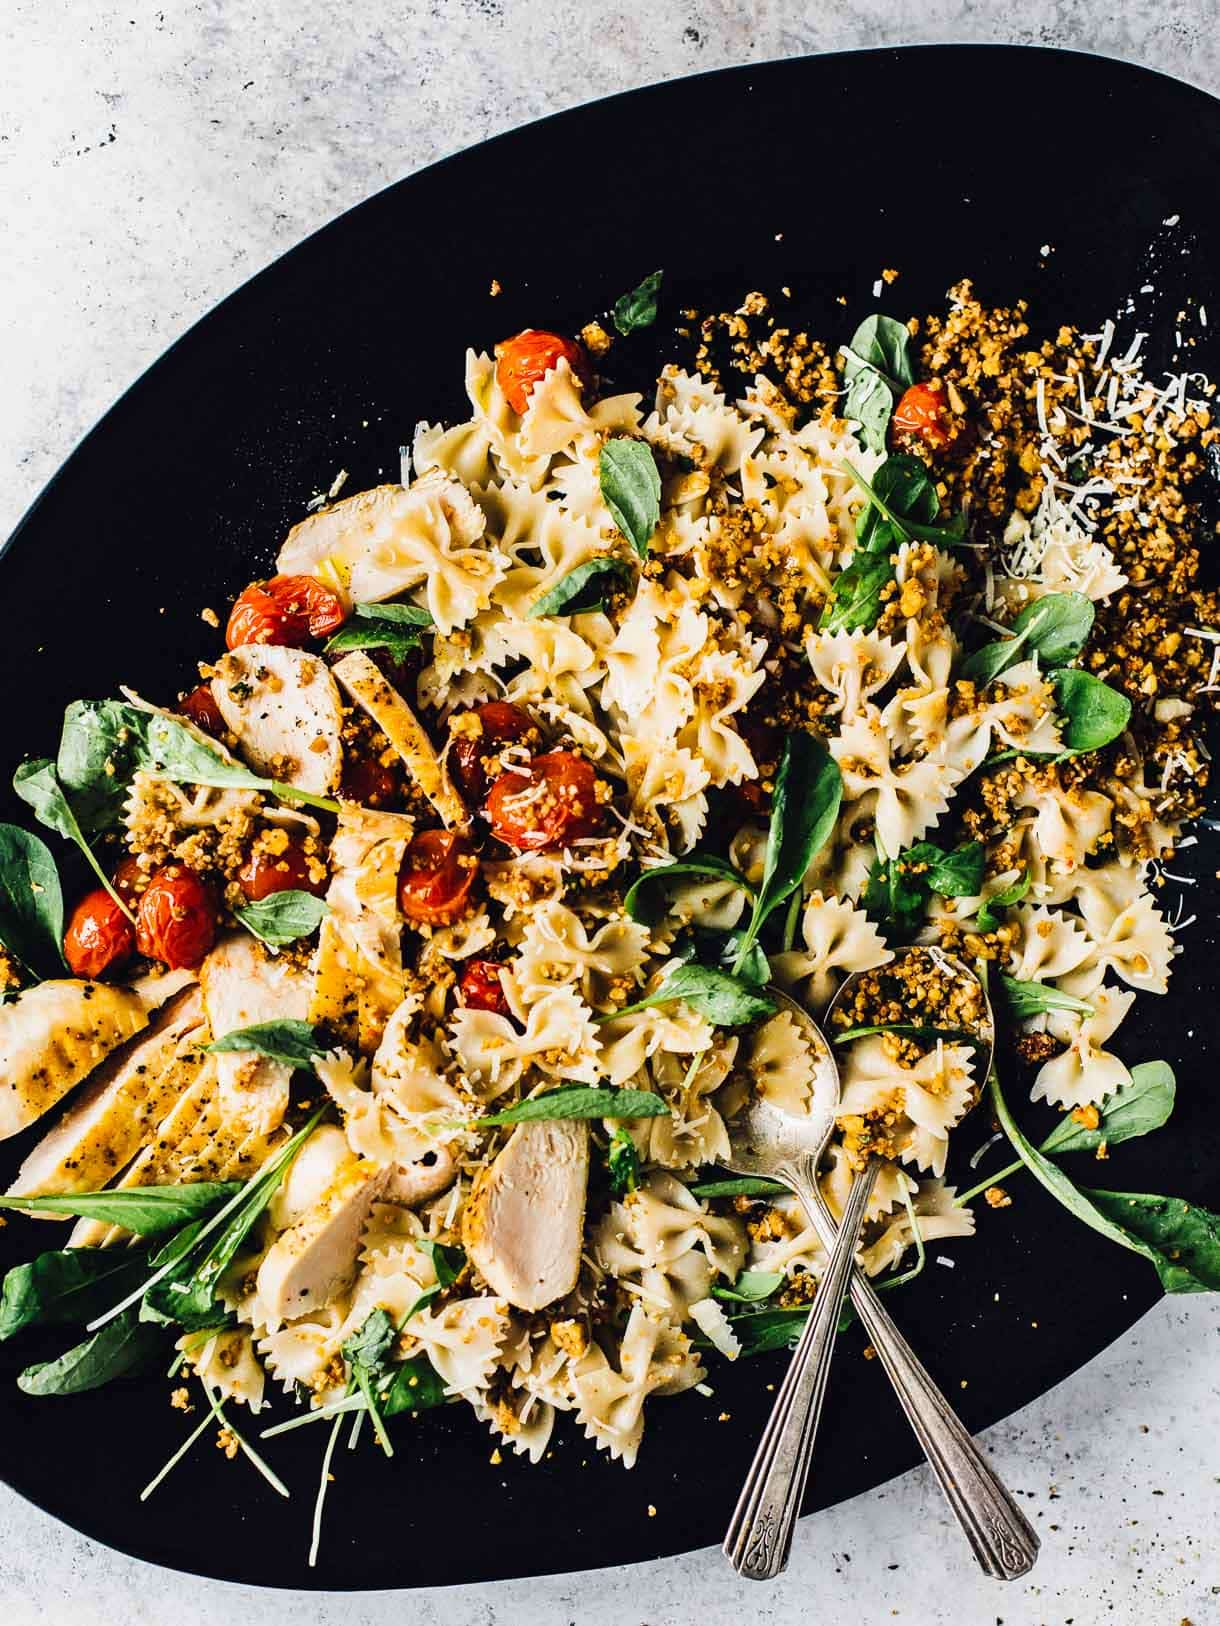 Bruschetta Chicken Pasta Salad with Walnut Crumble